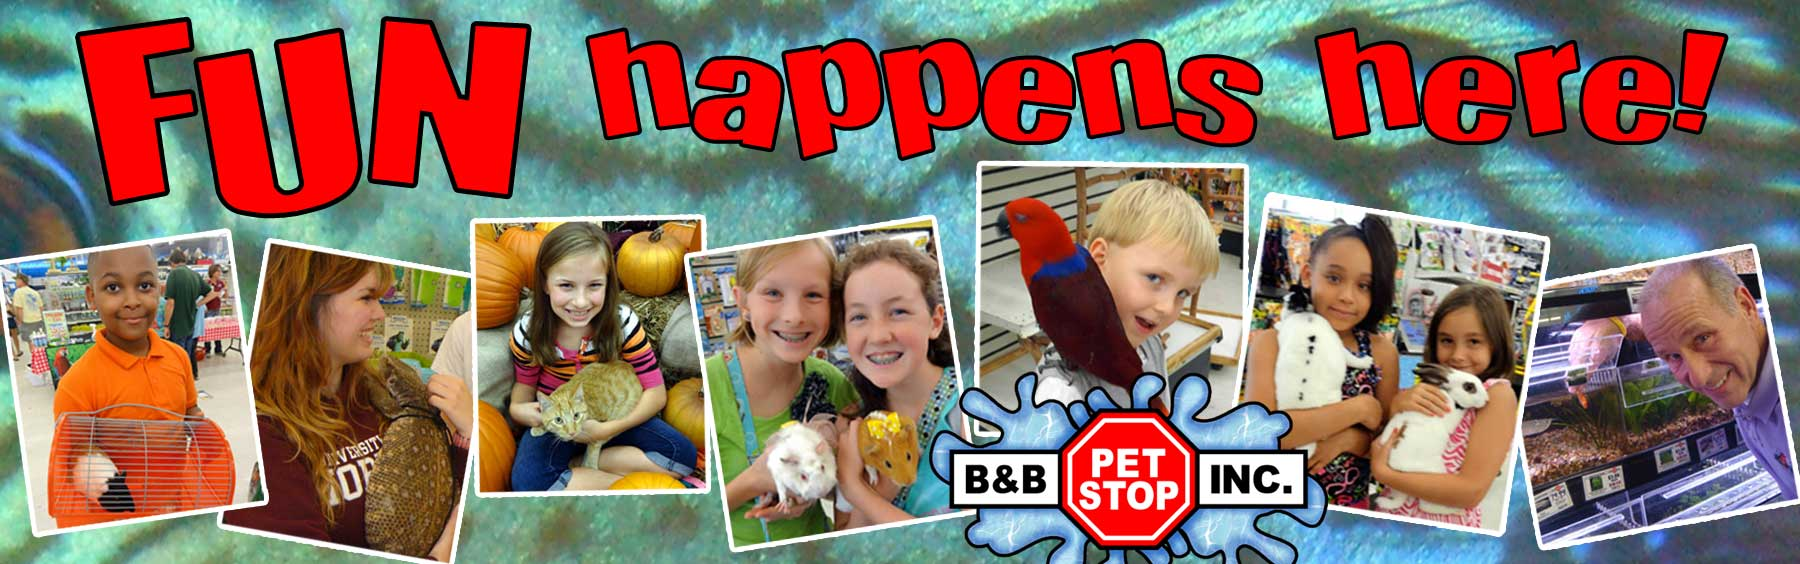 Fun happens at B&B Pet Stop